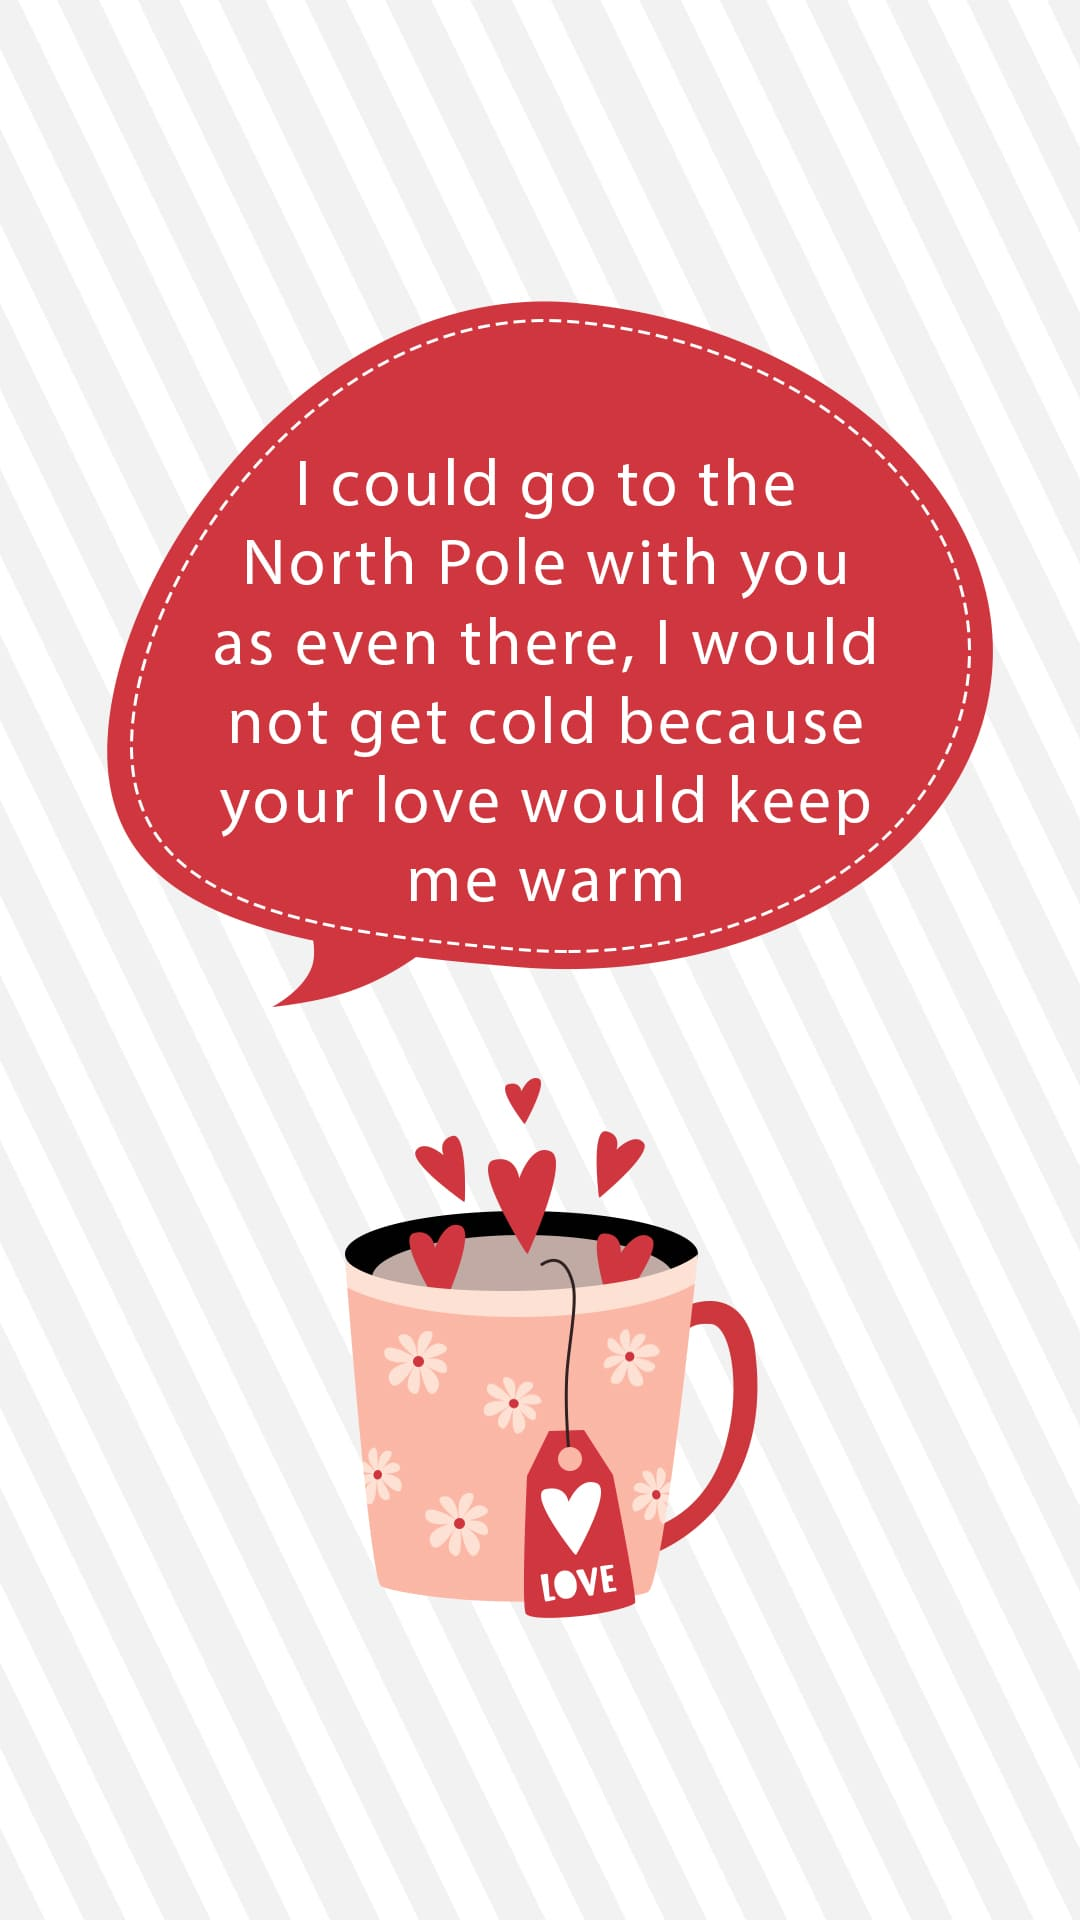 40+ Awesome Valentine's Day Quotes 2021 😍 - valentines day quotes for him 6